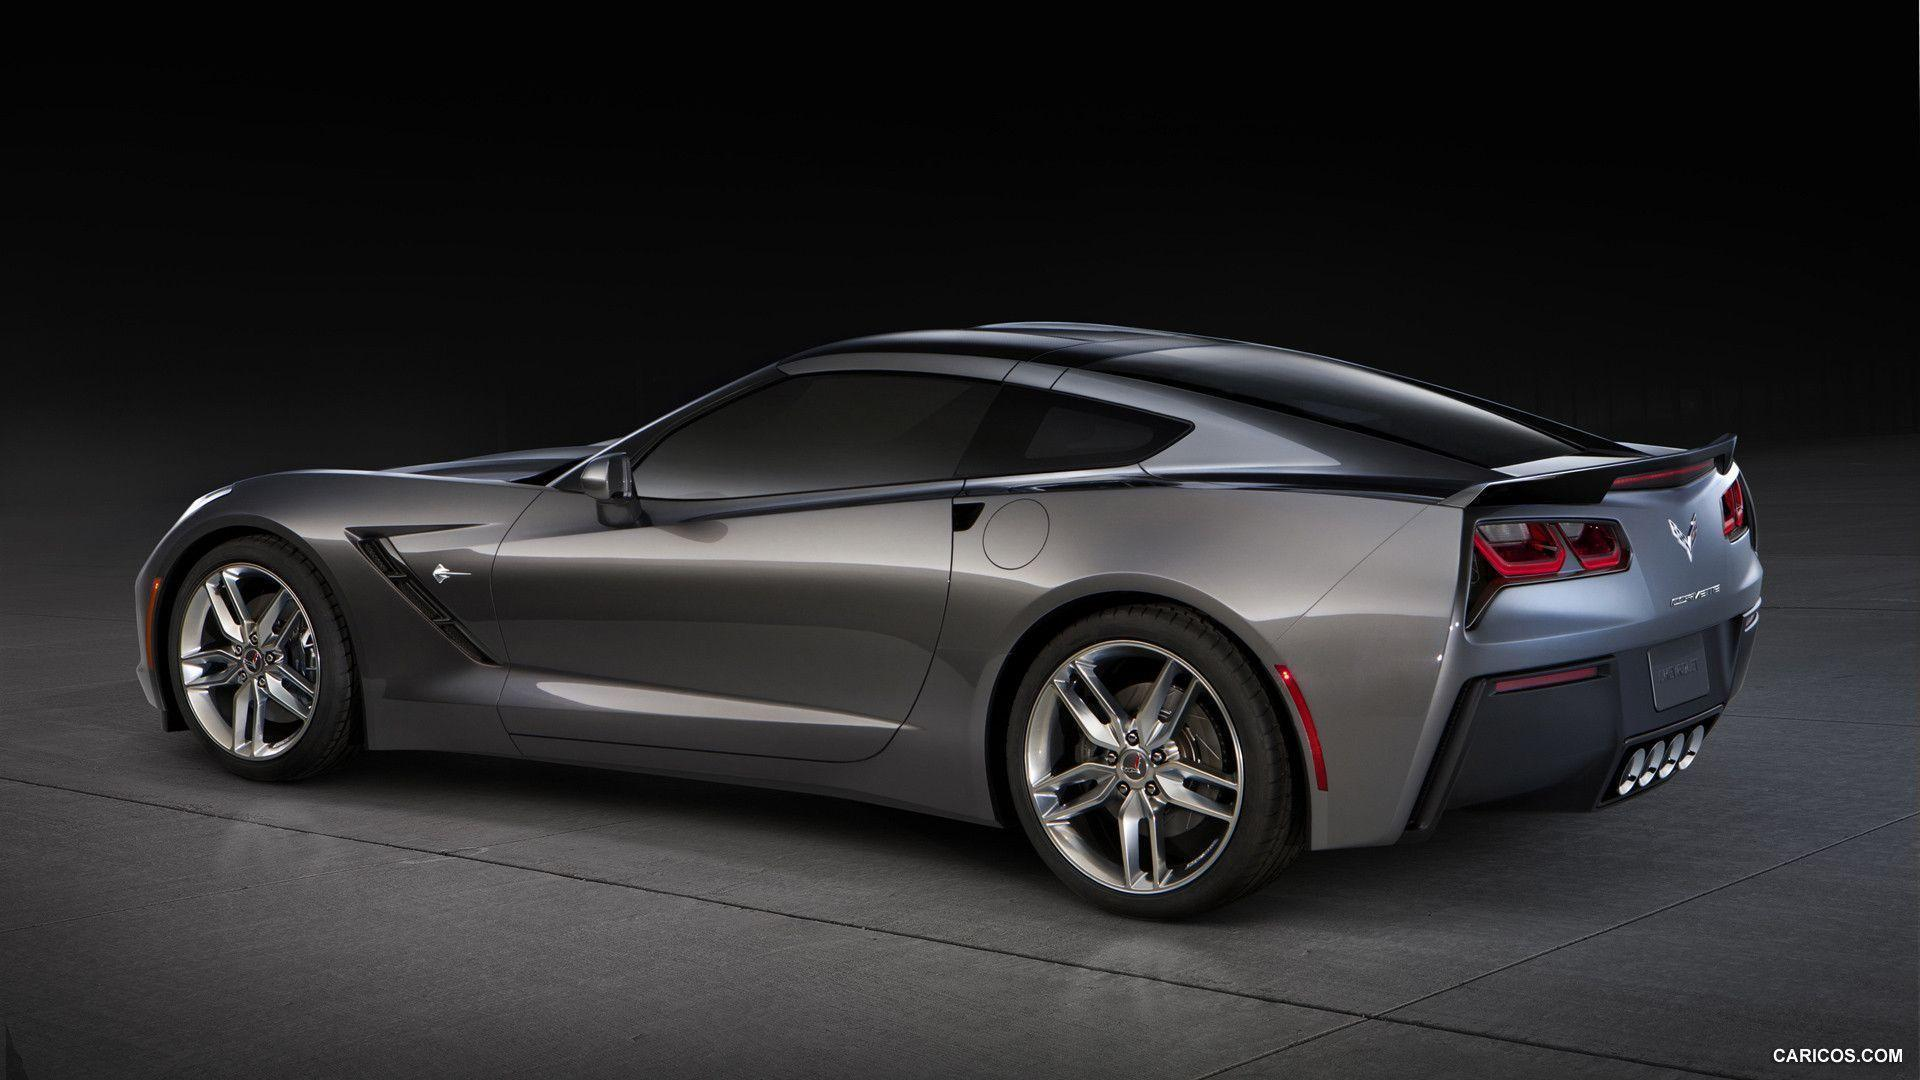 corvette wallpaper hd - photo #25